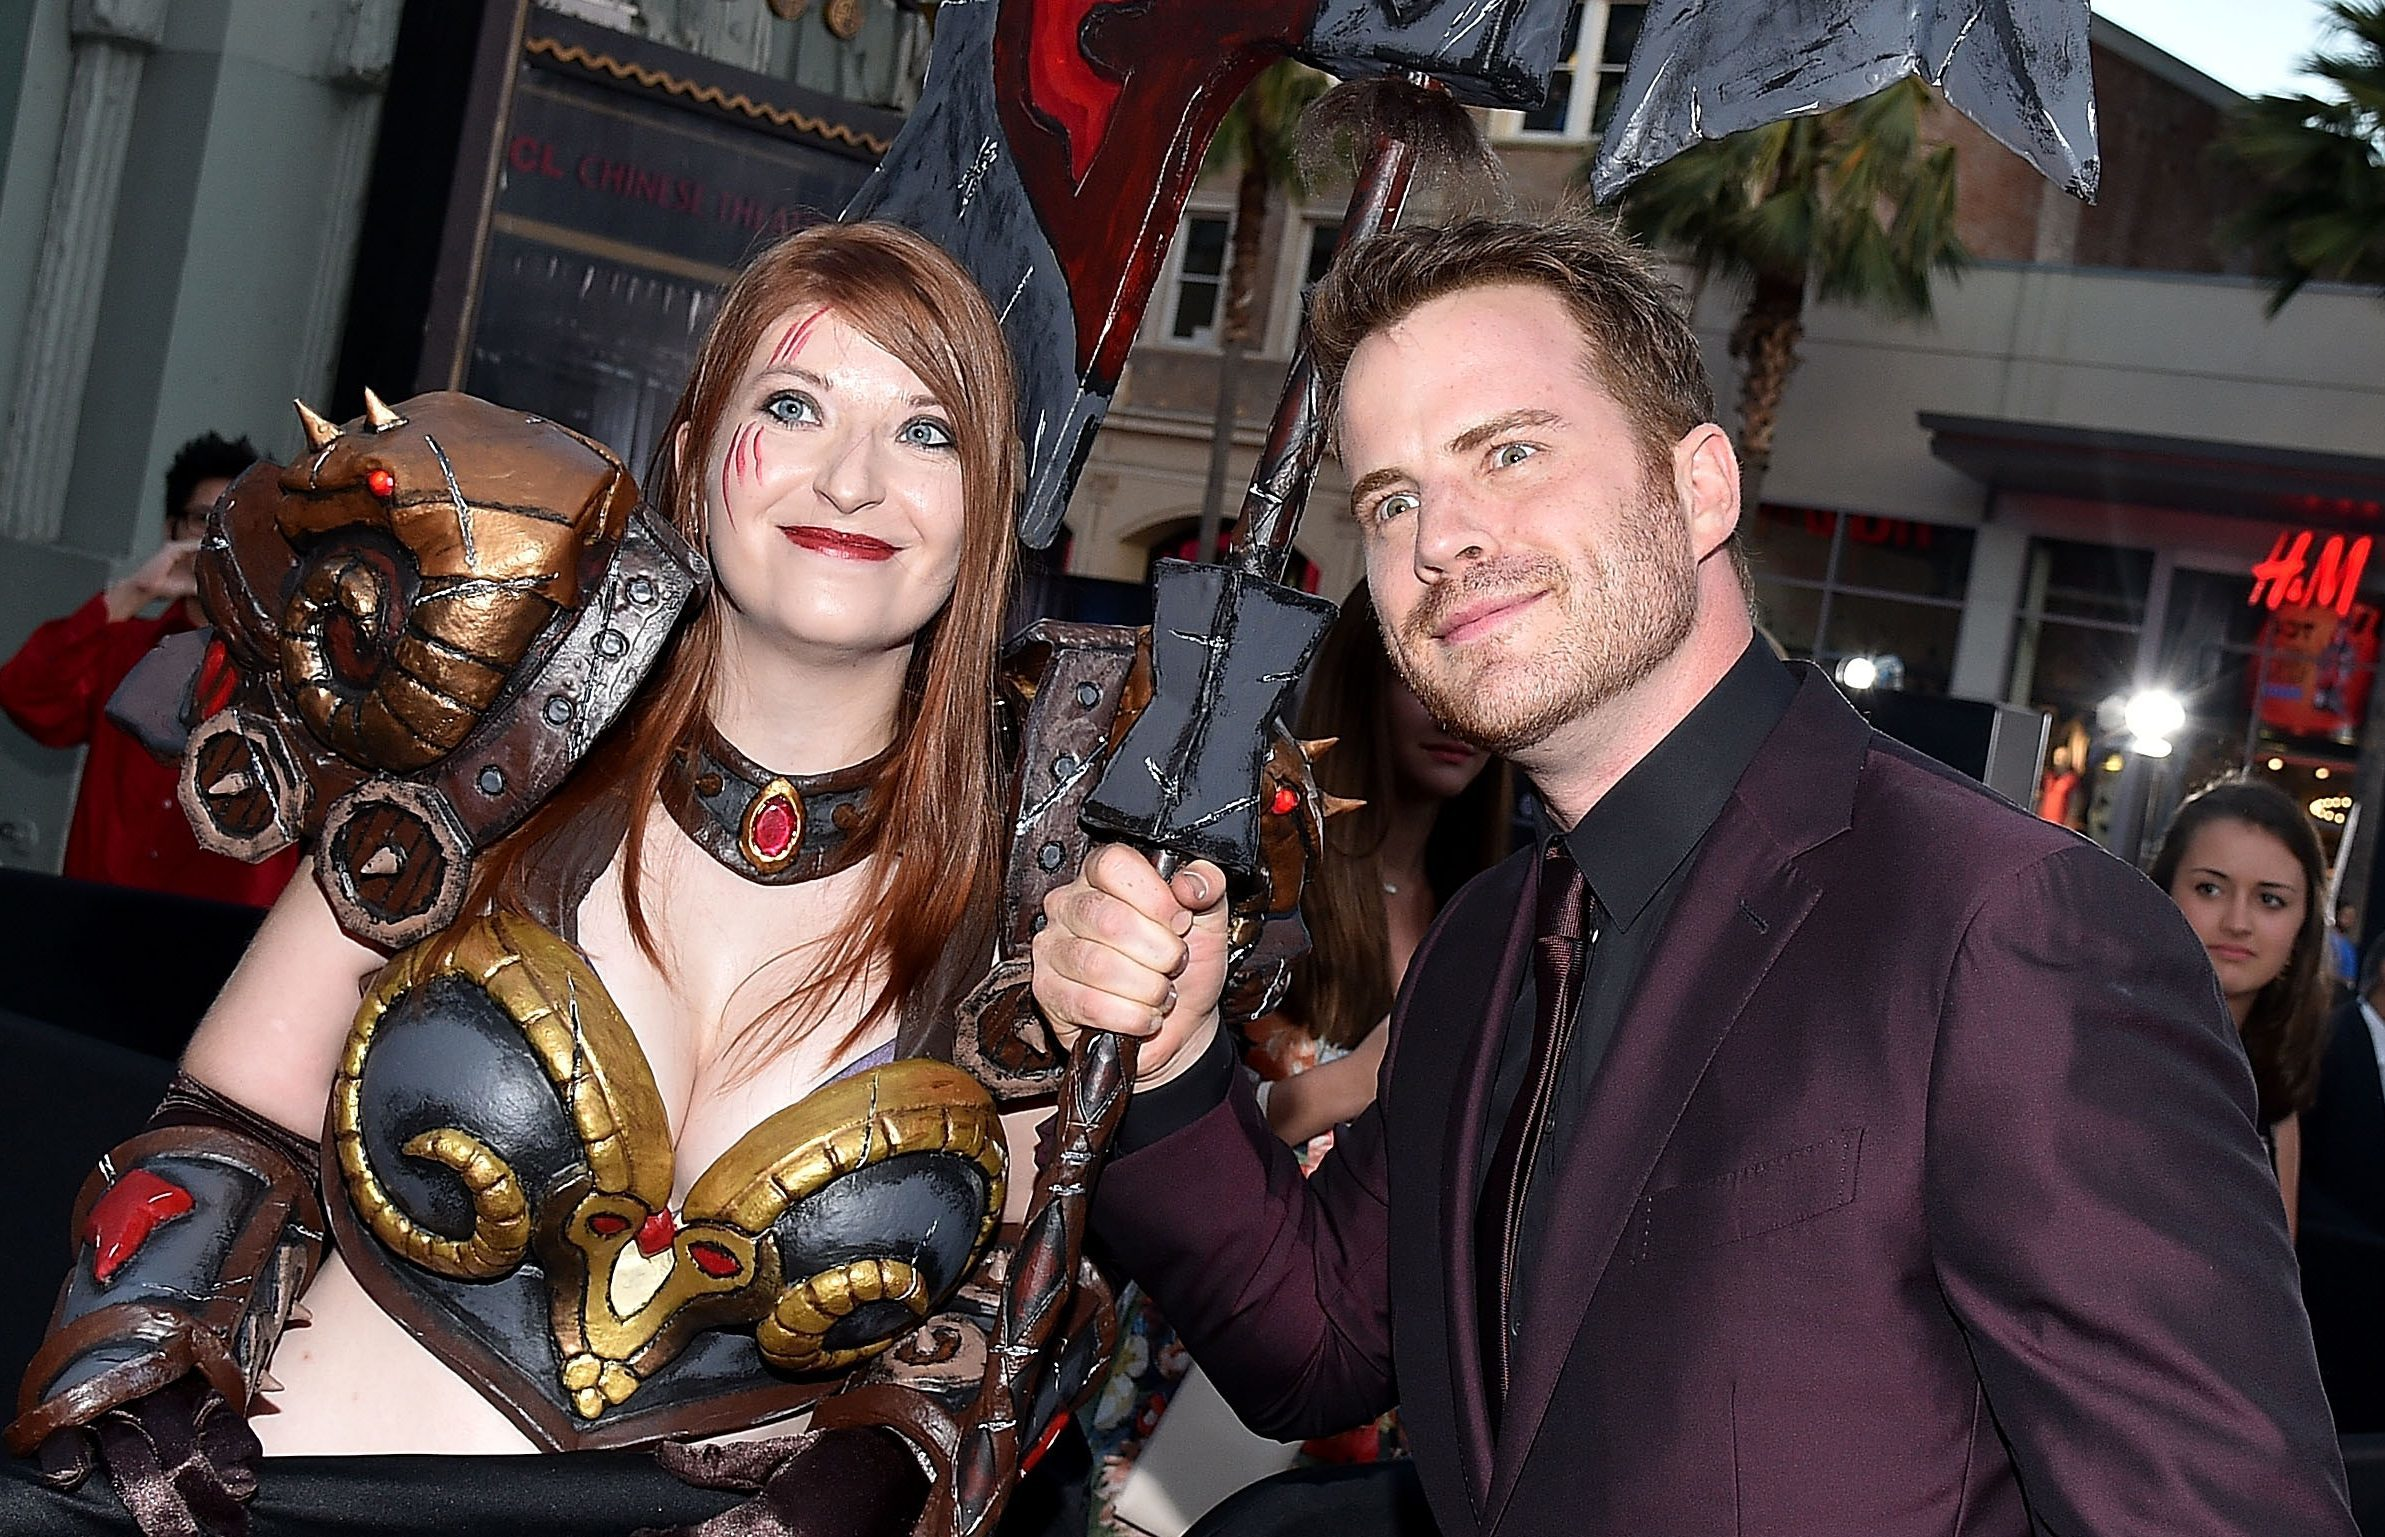 Actor Rob Kazinsky poses with a fan during the premiere of Warcraft (Mike Windle/Getty Images)